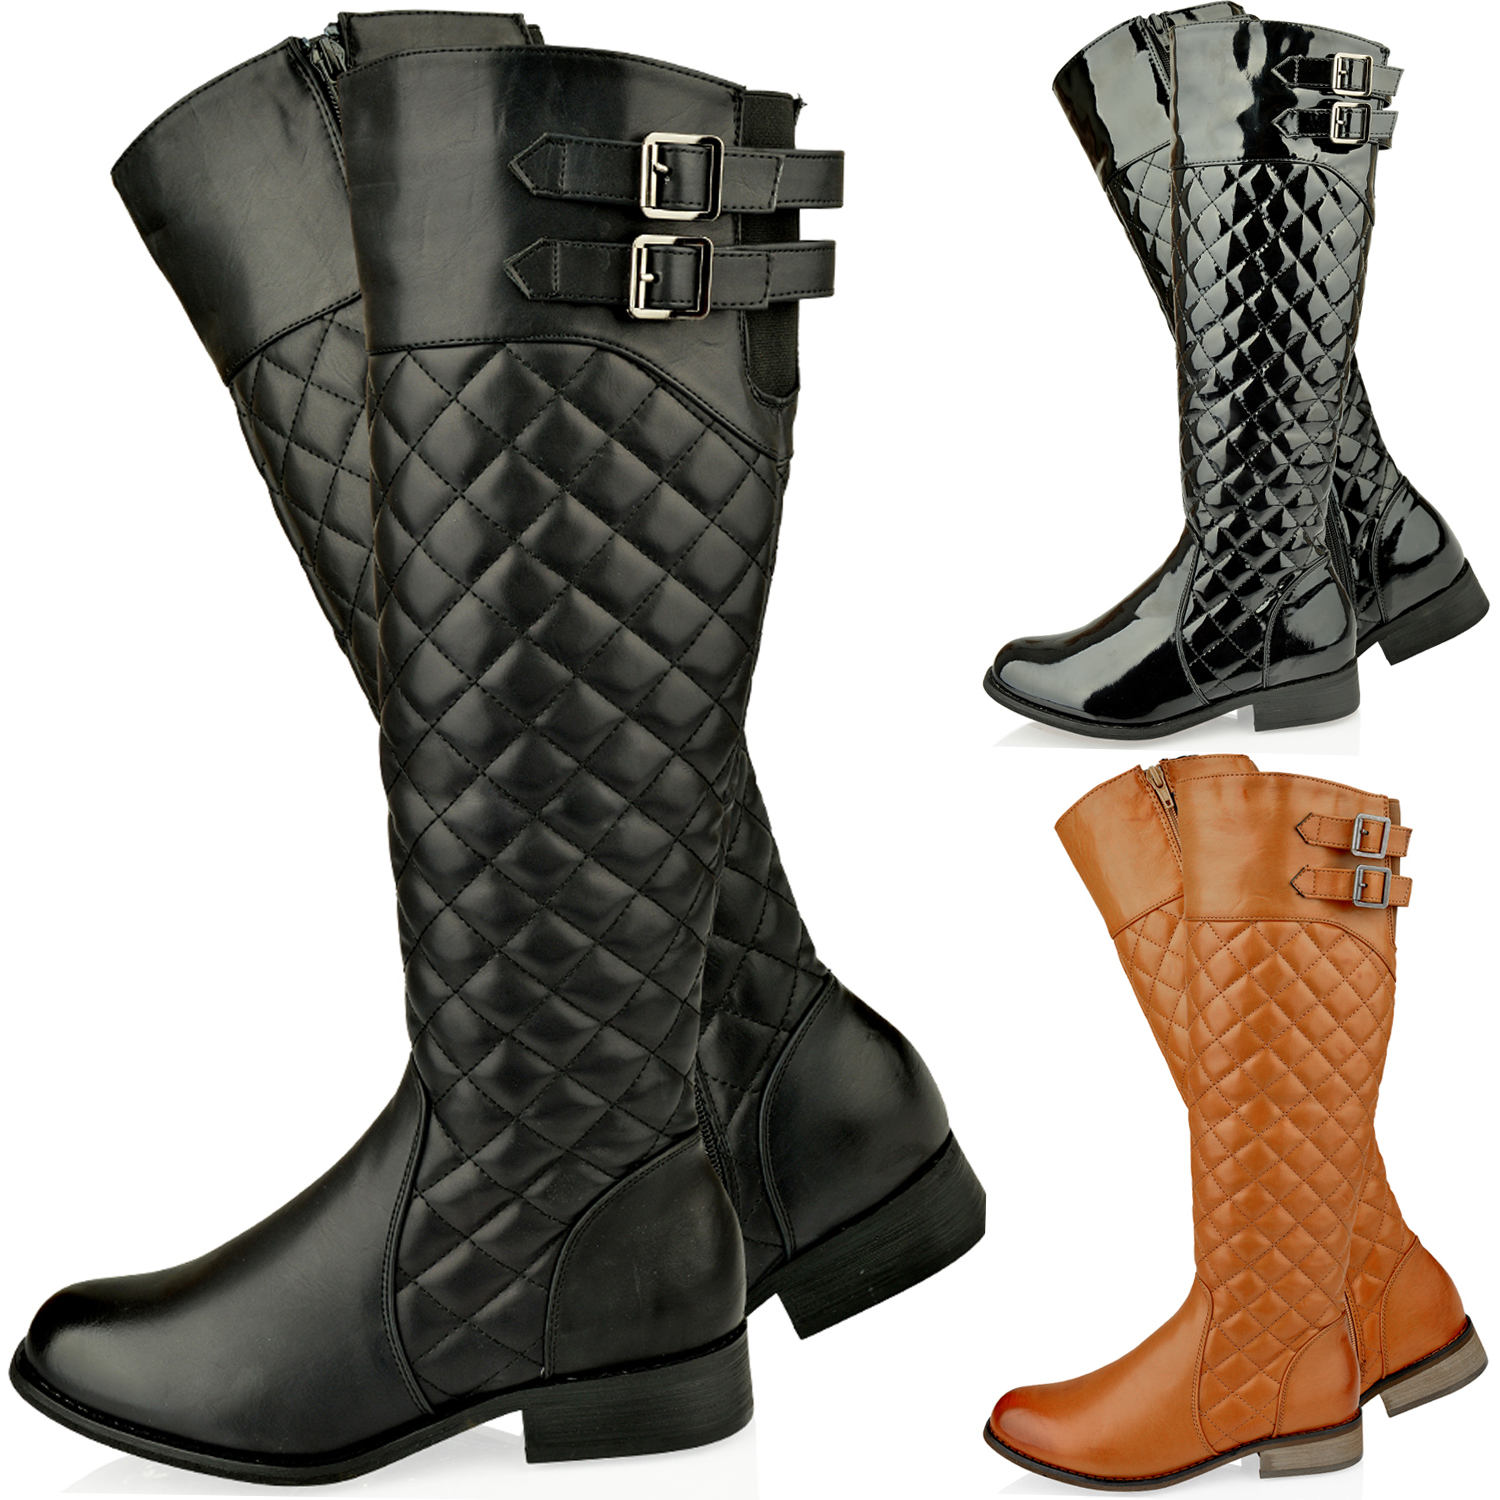 Knee High Boots For Women Hcl7v1Ro